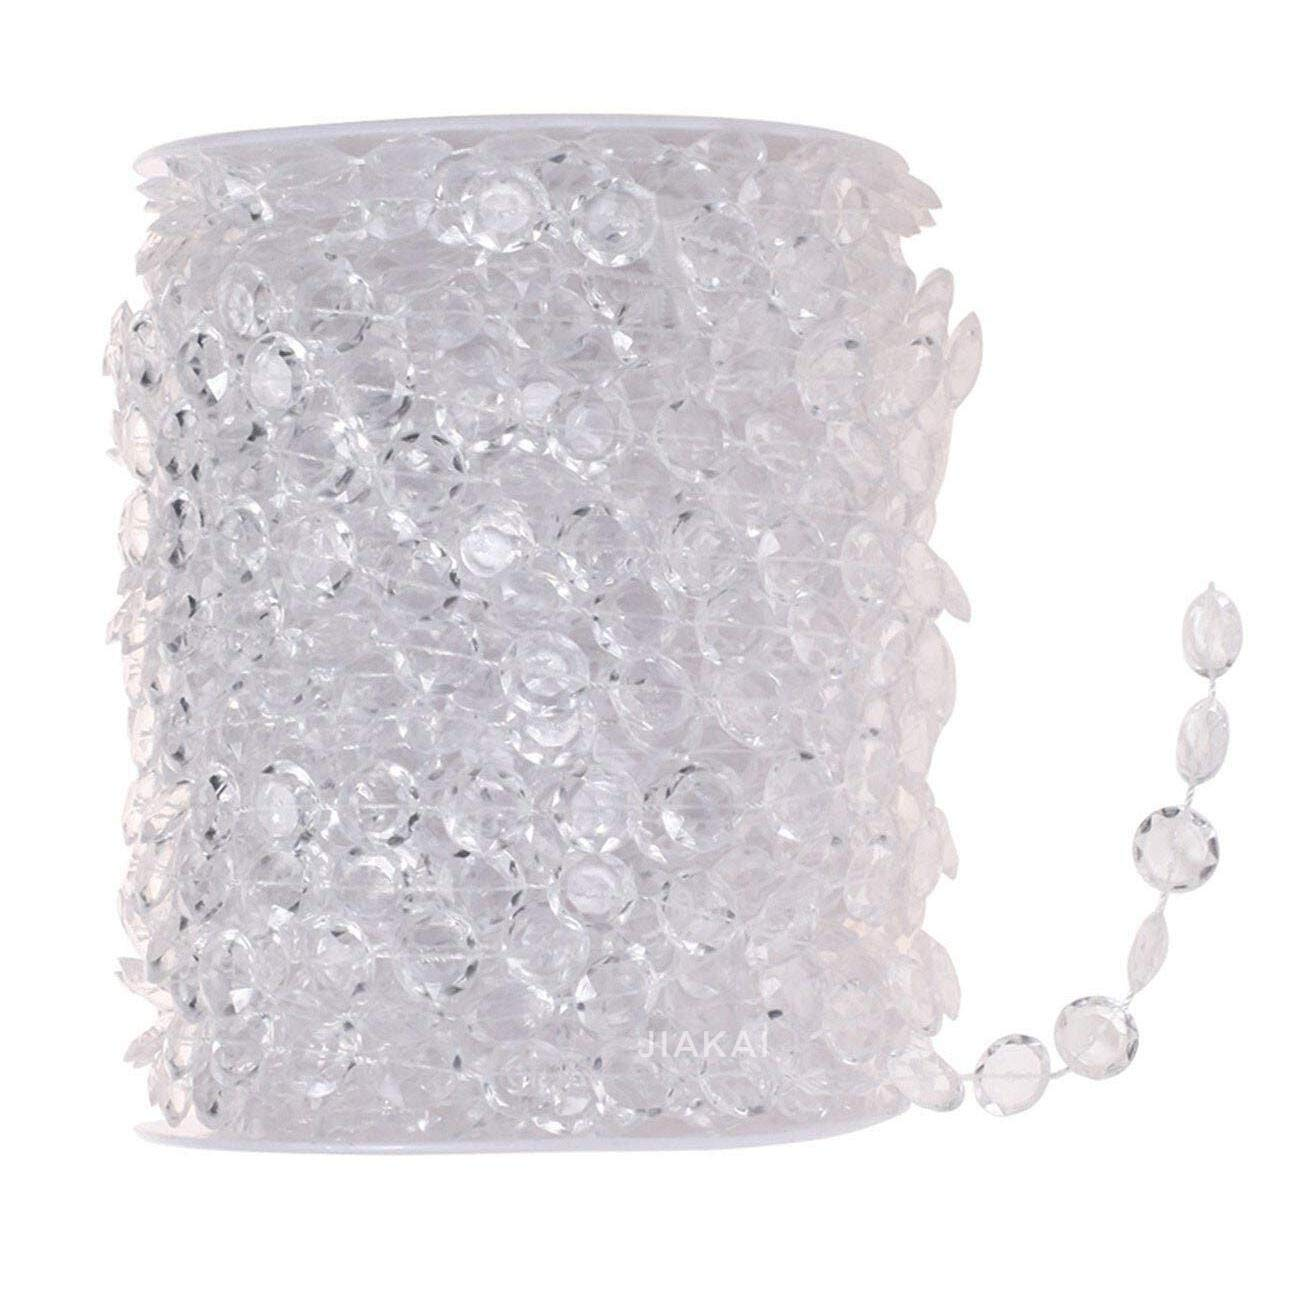 99FT Acrylic Plastic Crystal Clear Beads String for Chandelier Curtains for Doorways Decoration JIAKAI 4337027818